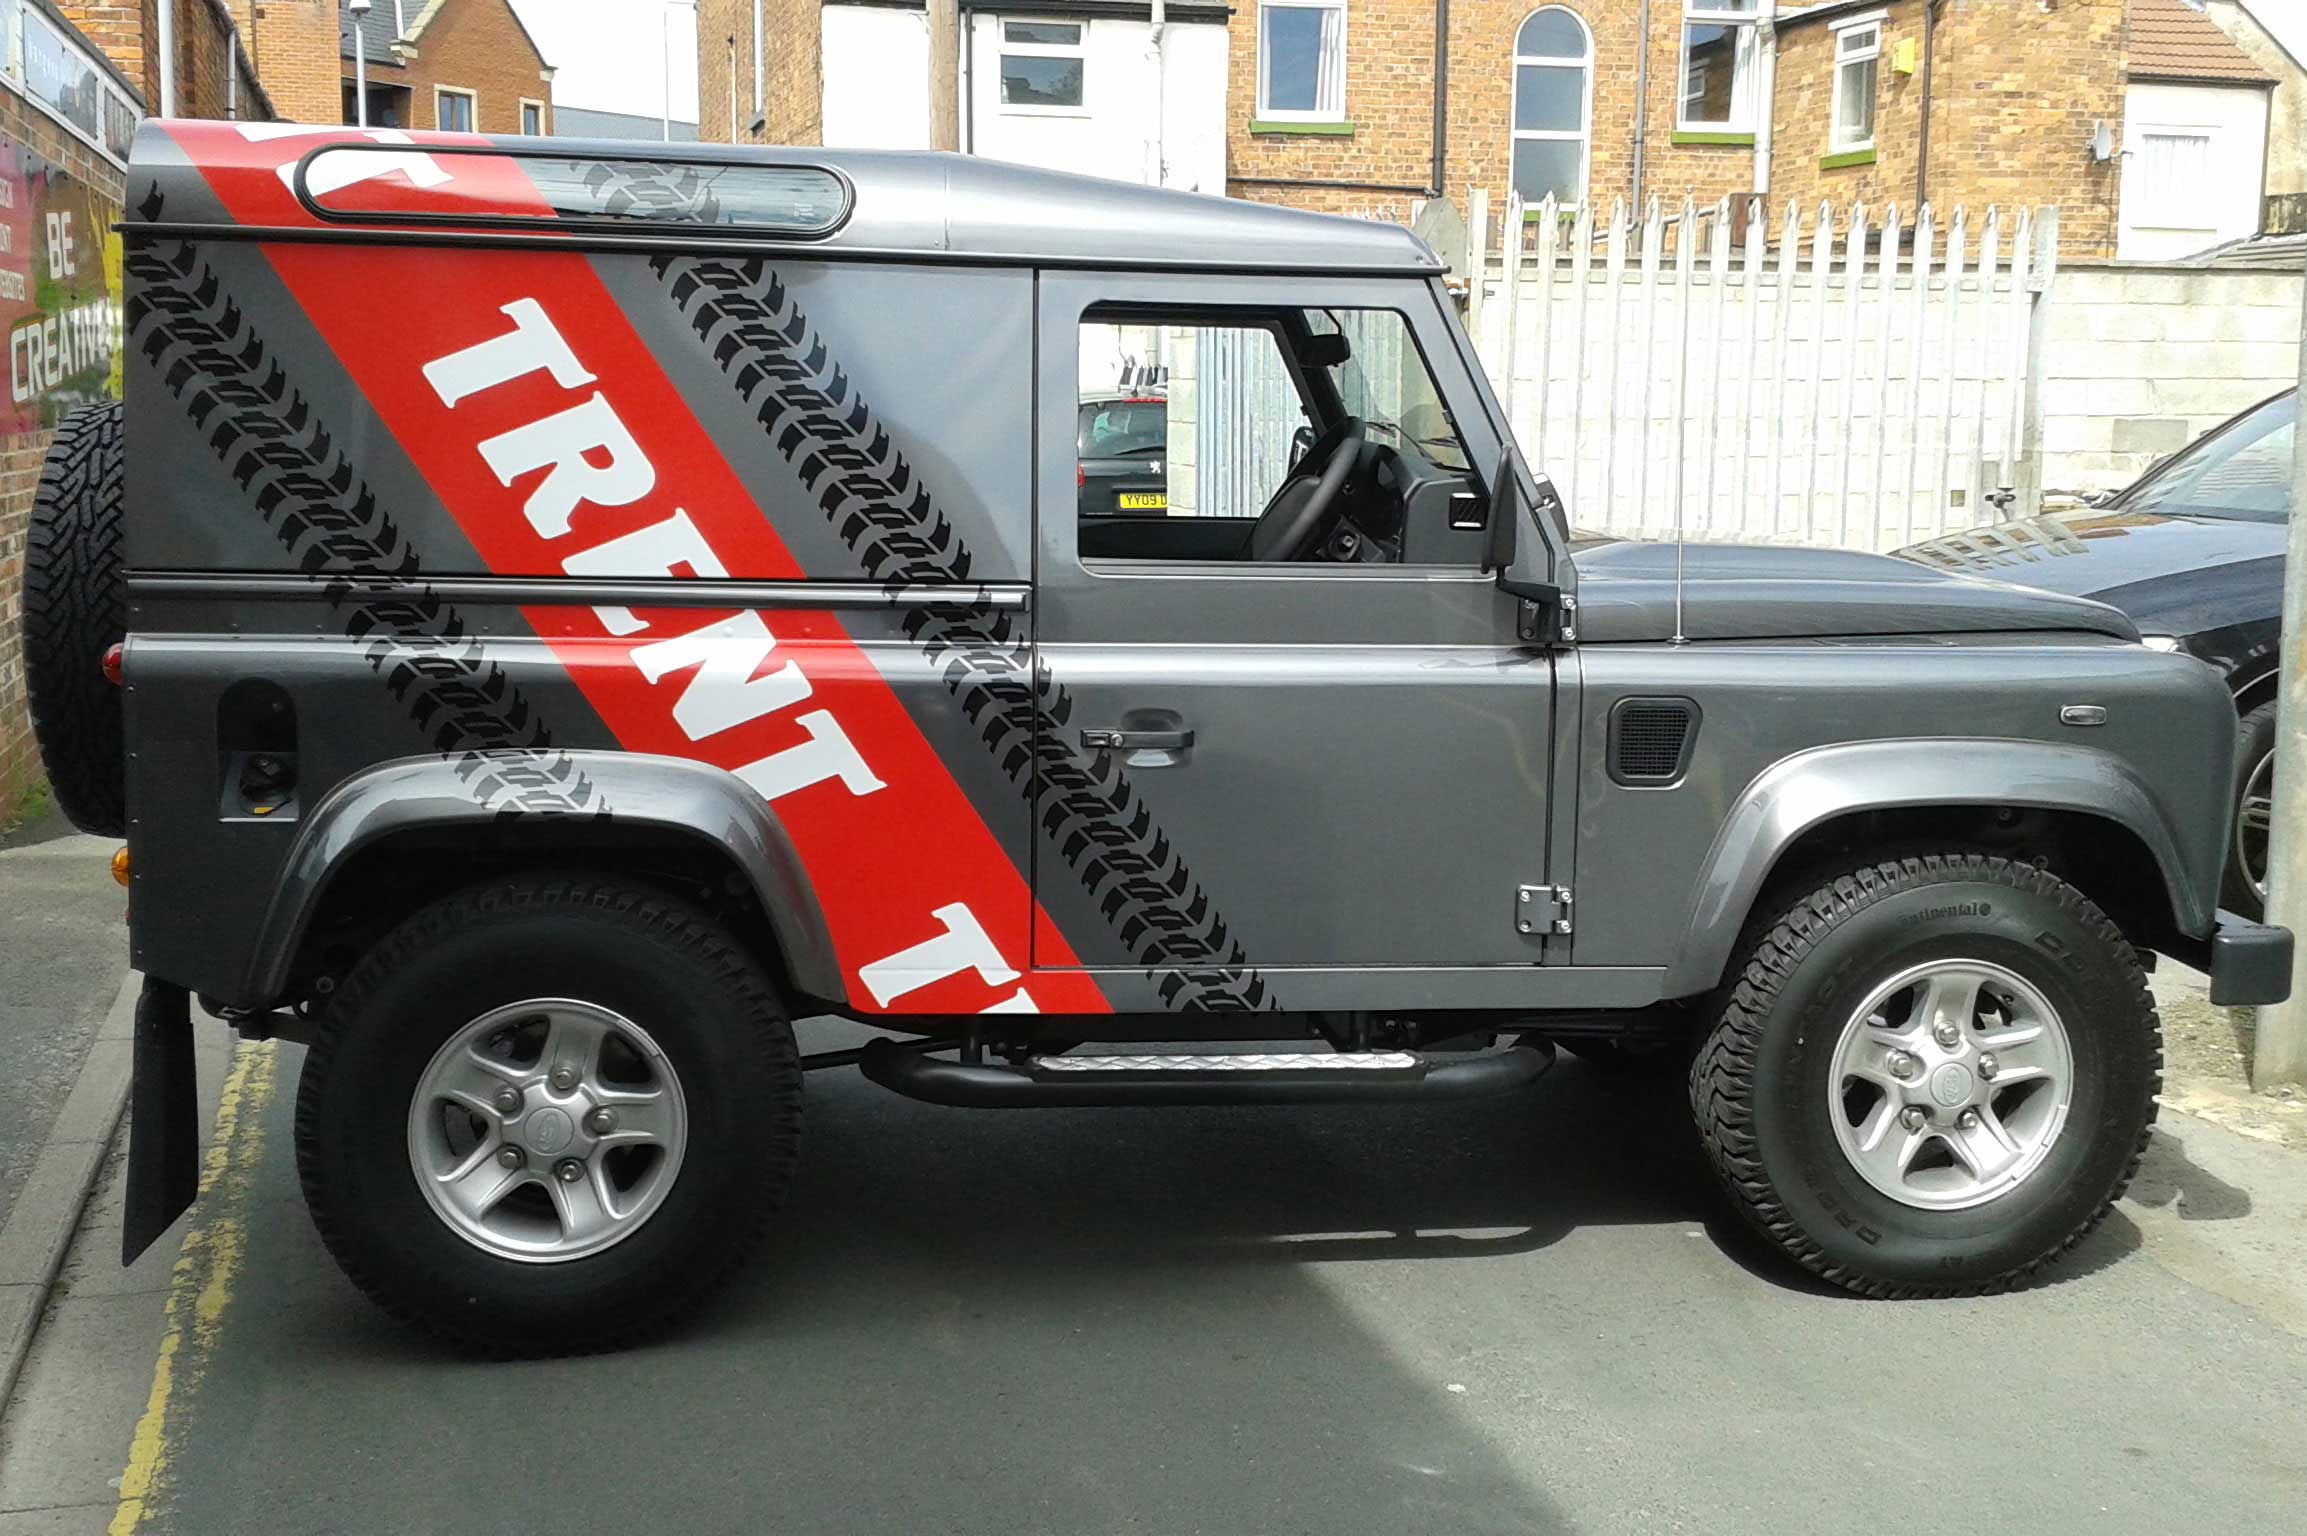 Vehicle Graphics at Burgess Design and Print, Retford